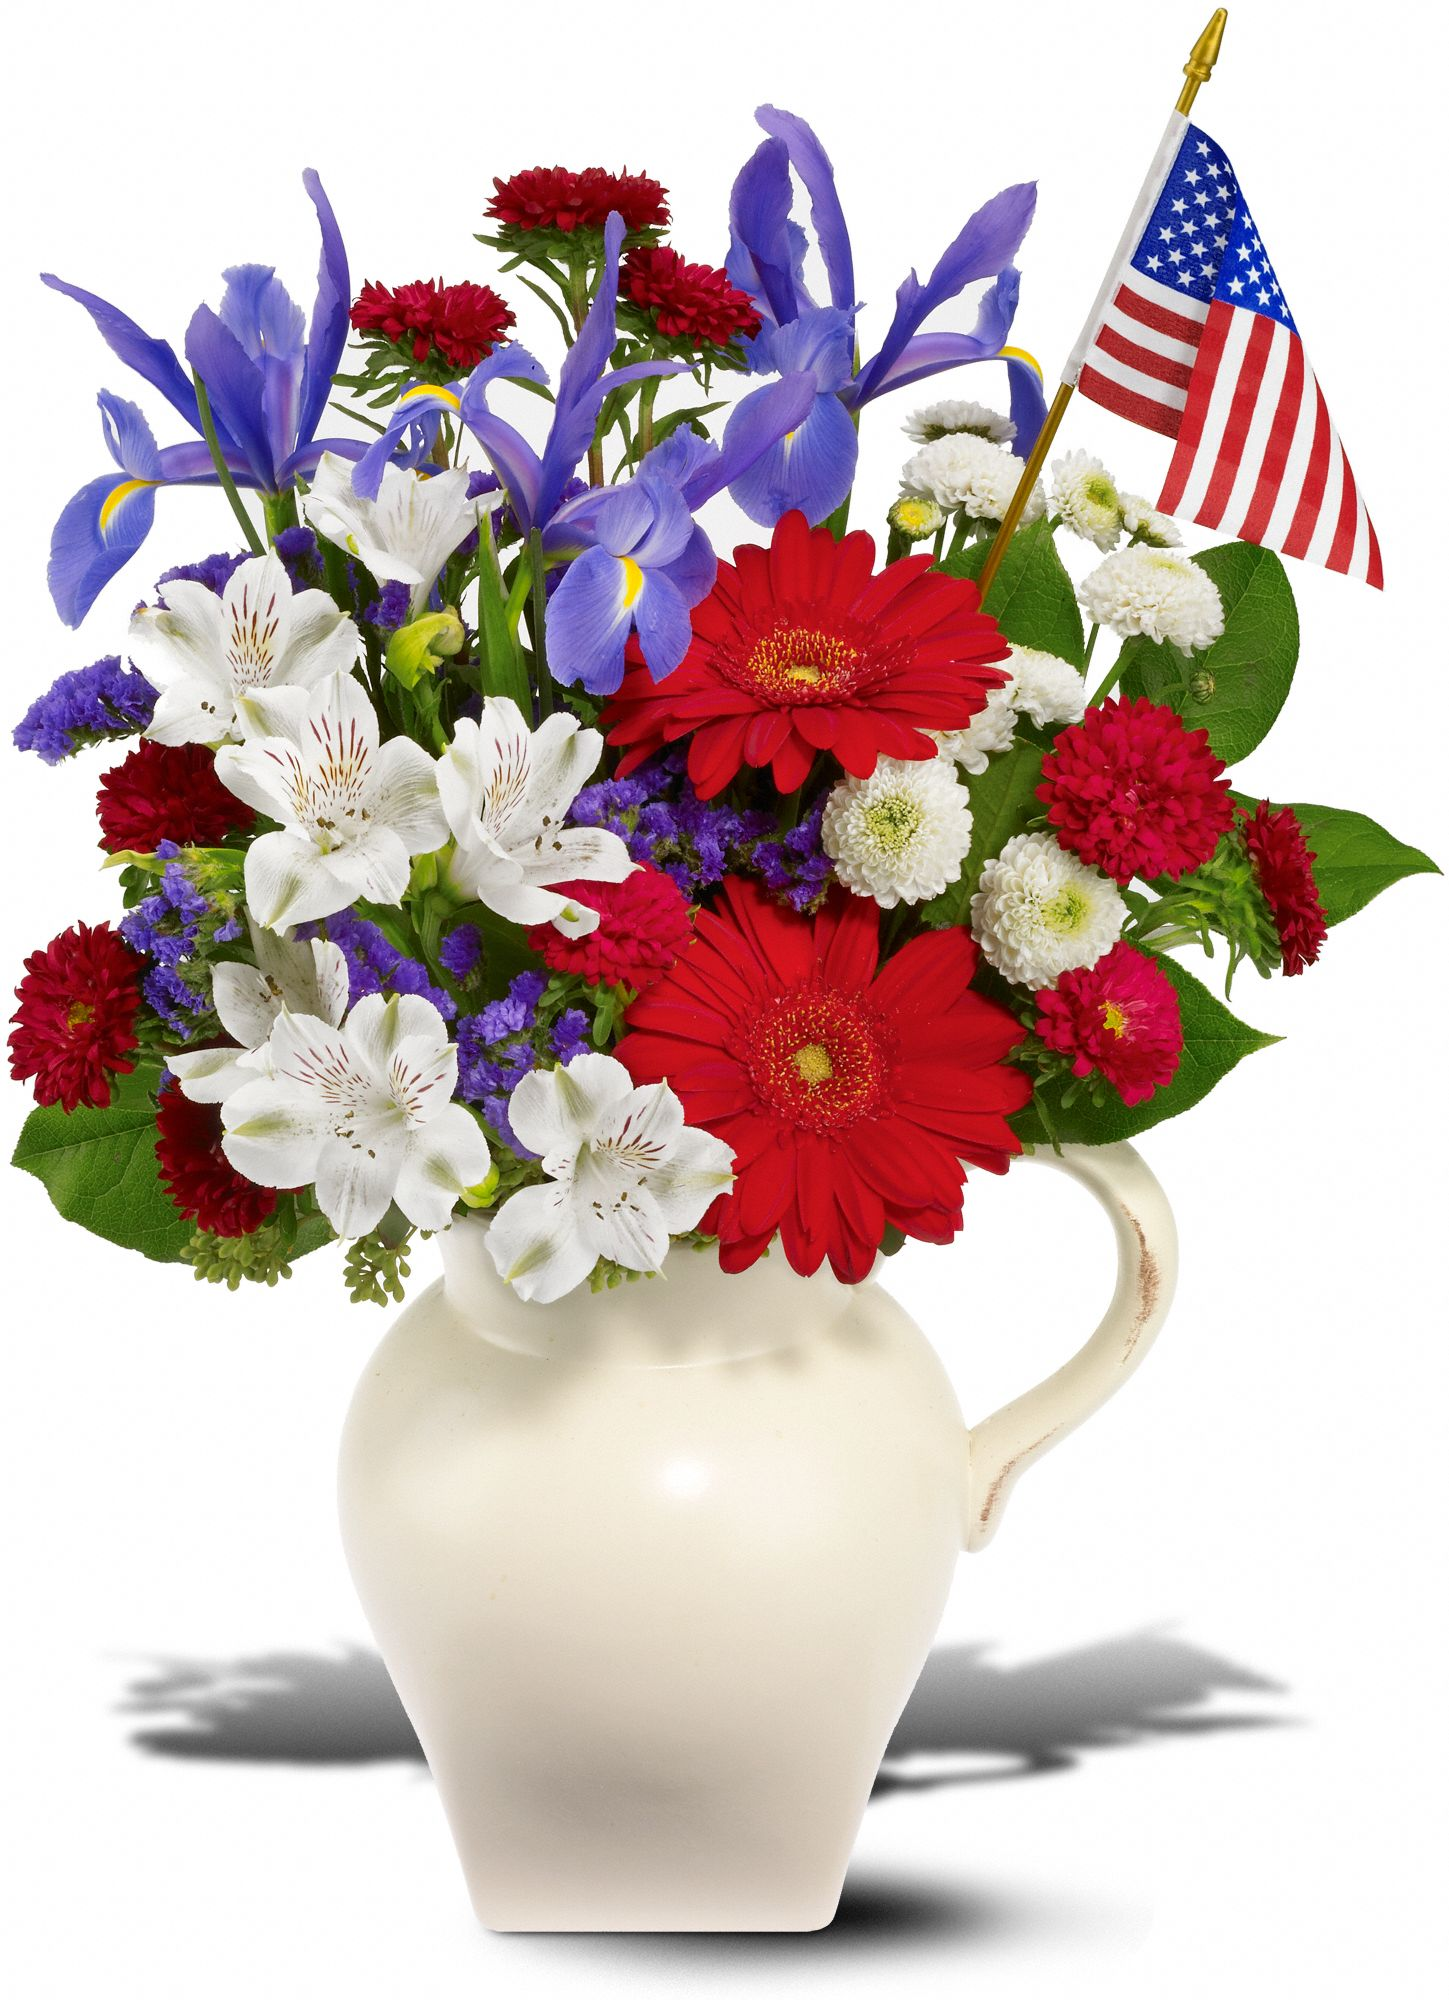 Red, white and blue flower bouquet